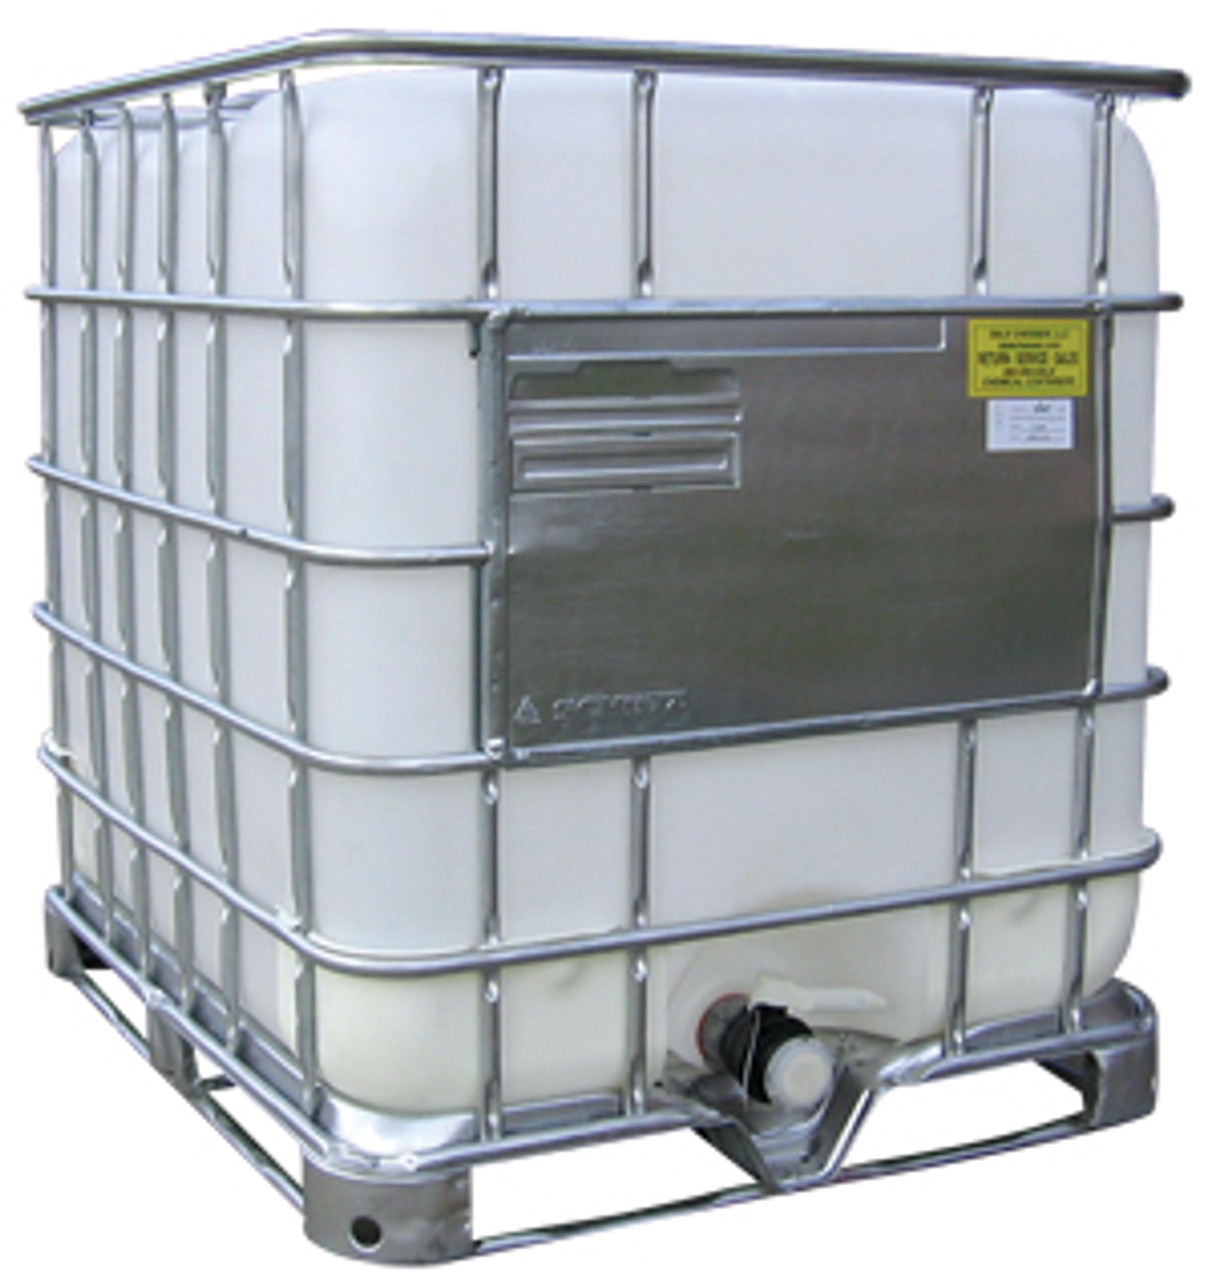 Schutz Ibc Tank 275 Gallon Capacity Reconditioned Ibc Bottle